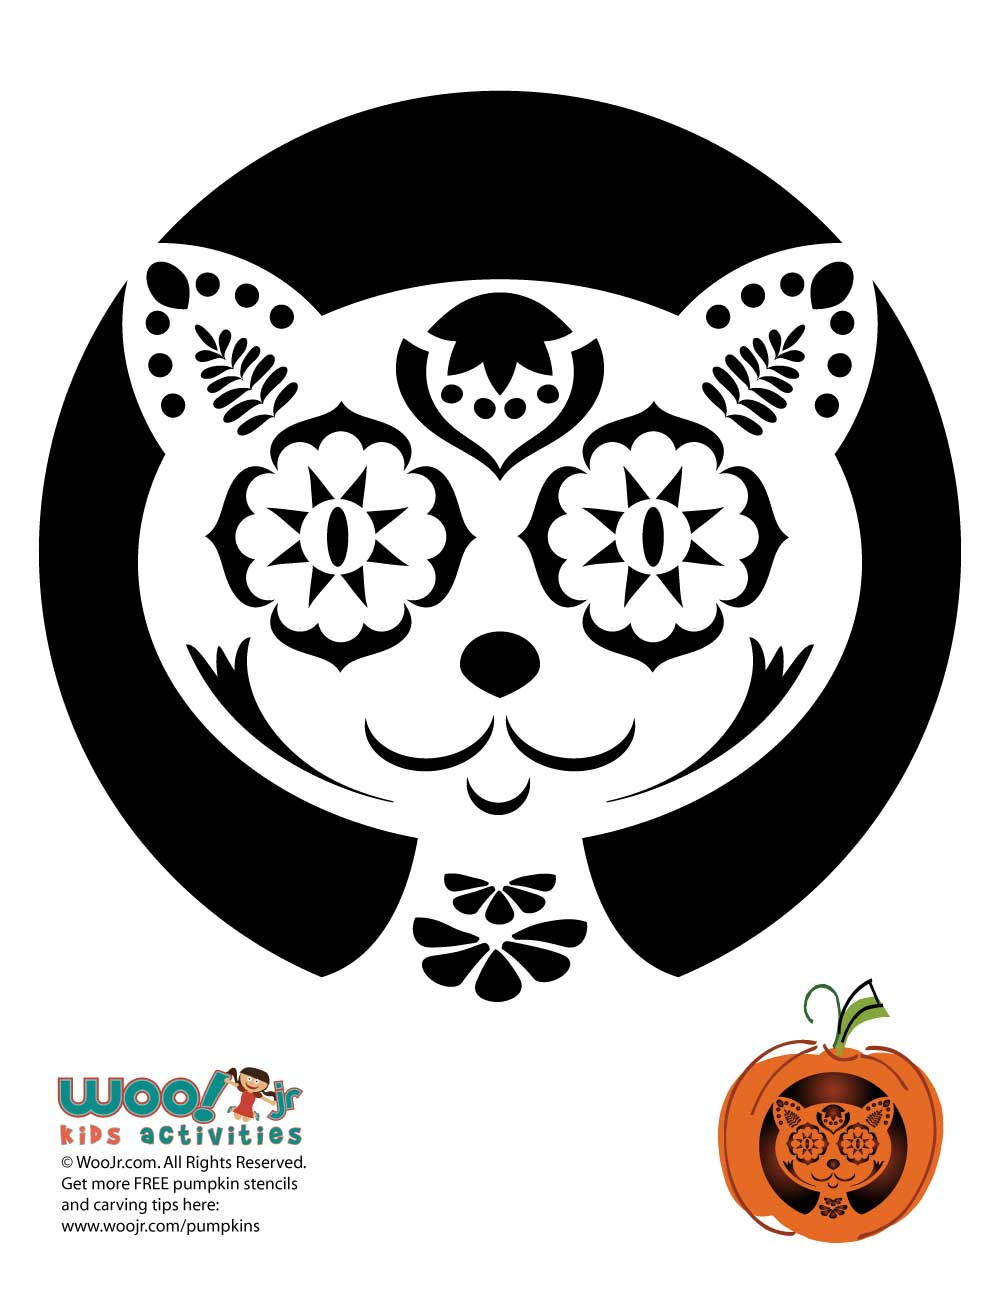 Day of the Dead Pumpkin Carving Stencils | Woo! Jr. Kids Activities